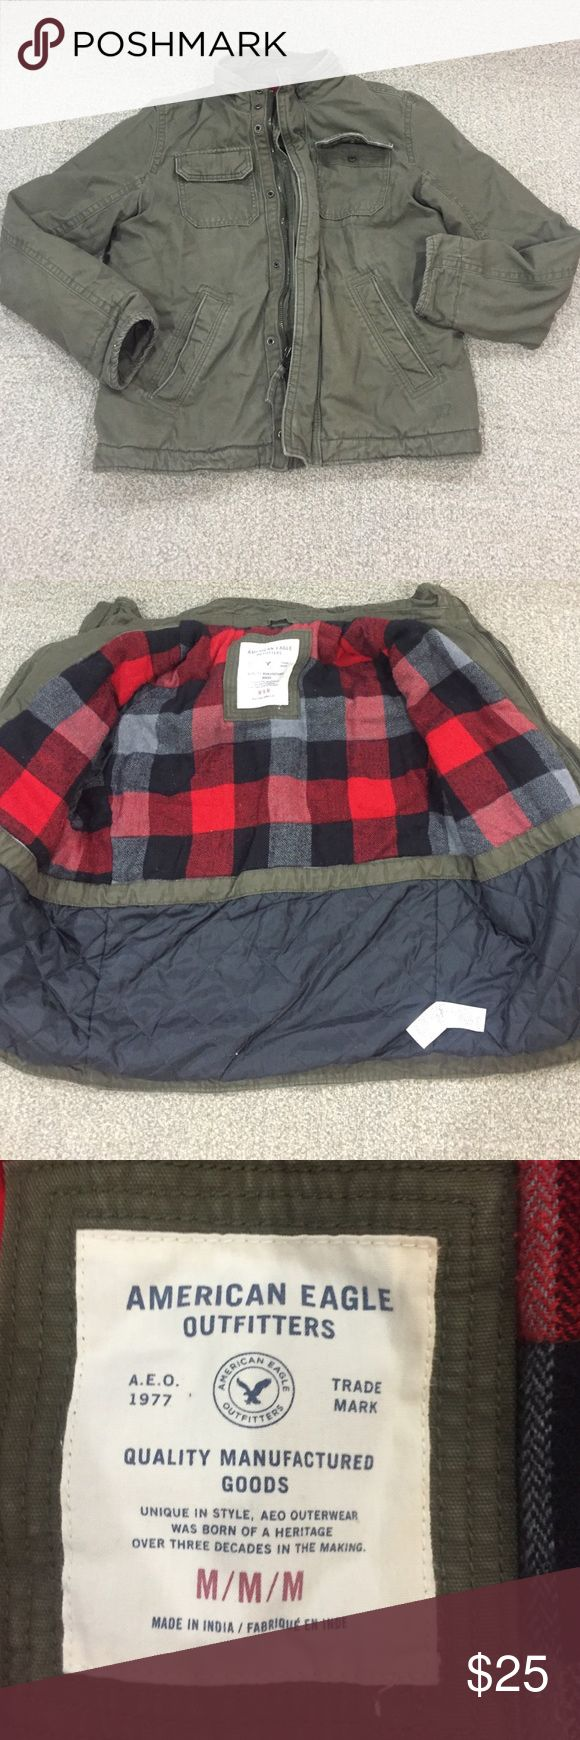 Men's Jacket American Eagle jacket, normal wear ,make an offer American Eagle Outfitters Jackets & Coats Utility Jackets